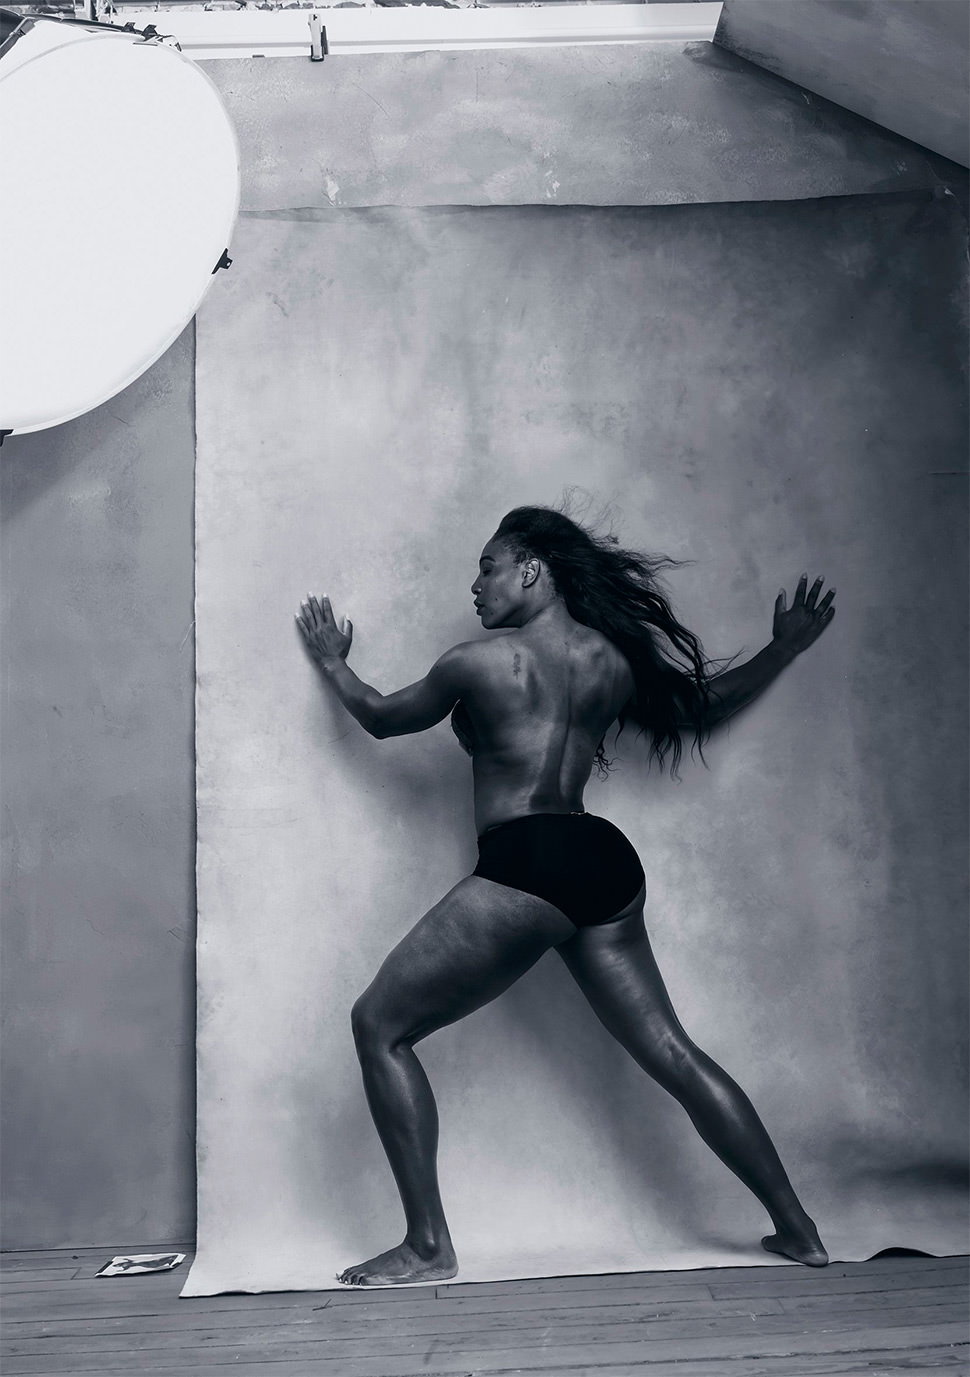 Serena Williams para el calendario Pirelli 2016